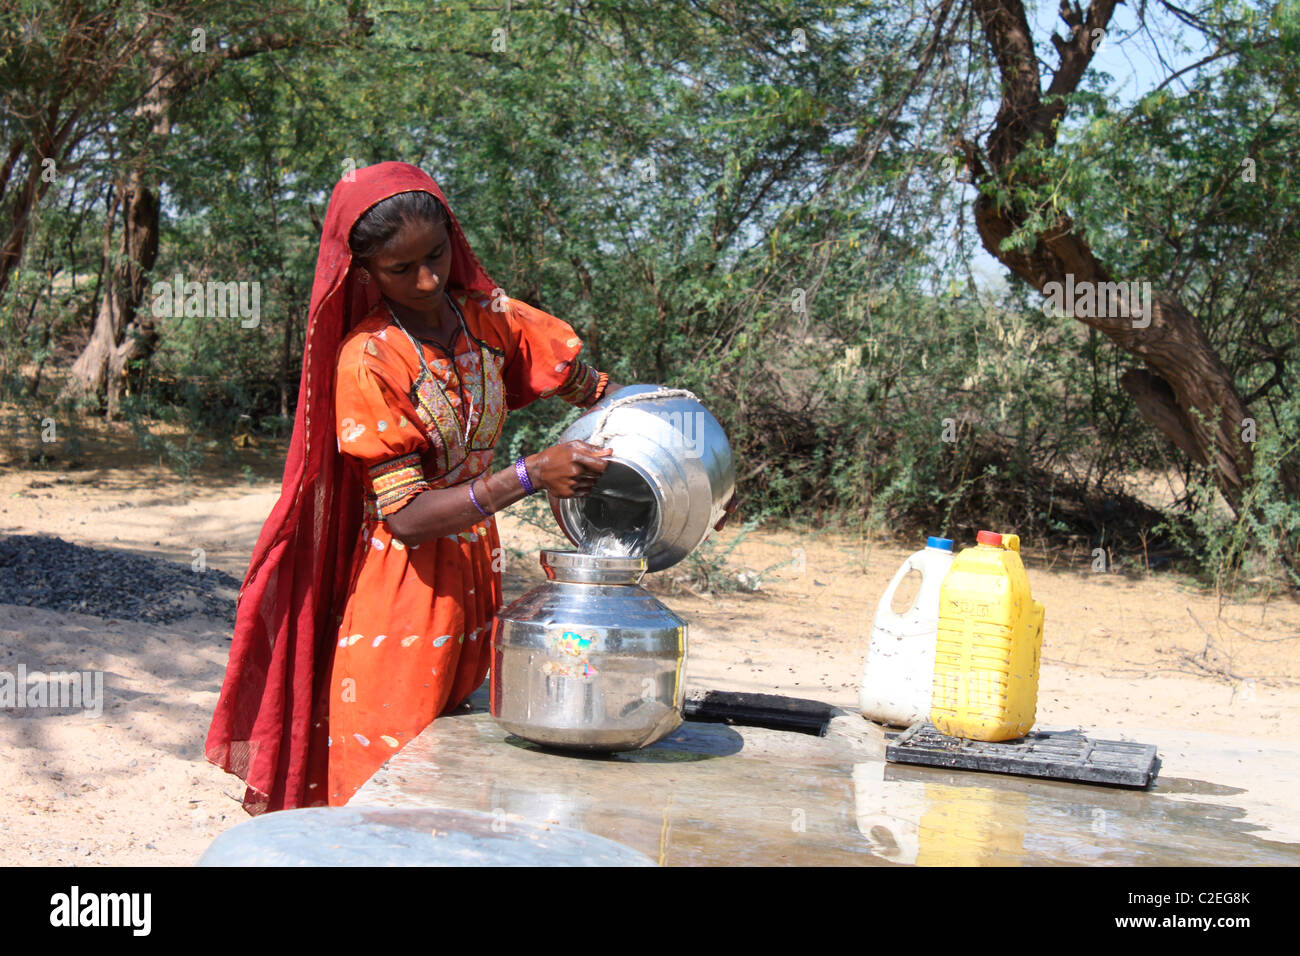 A indian rural woman collecting water - Stock Image